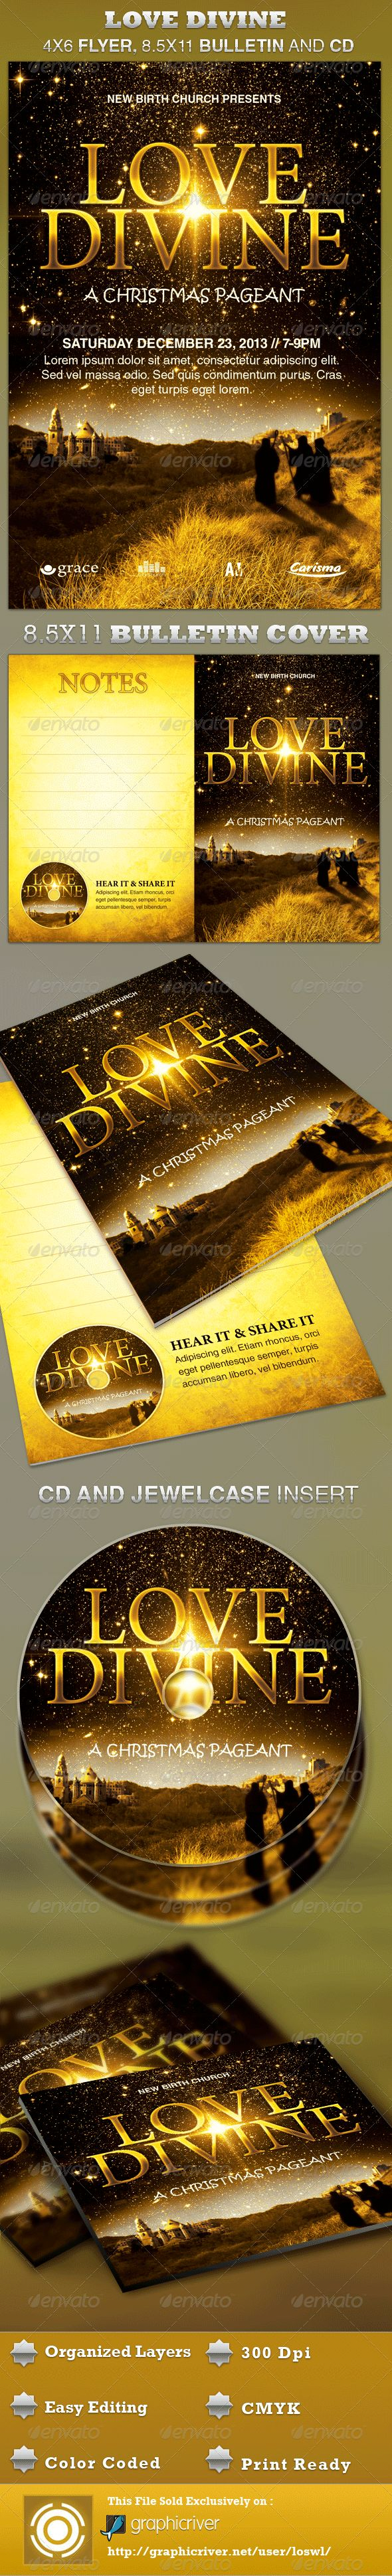 The Love Divine Flyer, Bulletin and CD Template is great for any Church Event. Use it for Christmas Sermons, Pageants and Musicals. The layered Photoshop files are color coded and organized in folders for easy editing. The file also contains 6 – One Click Color options.